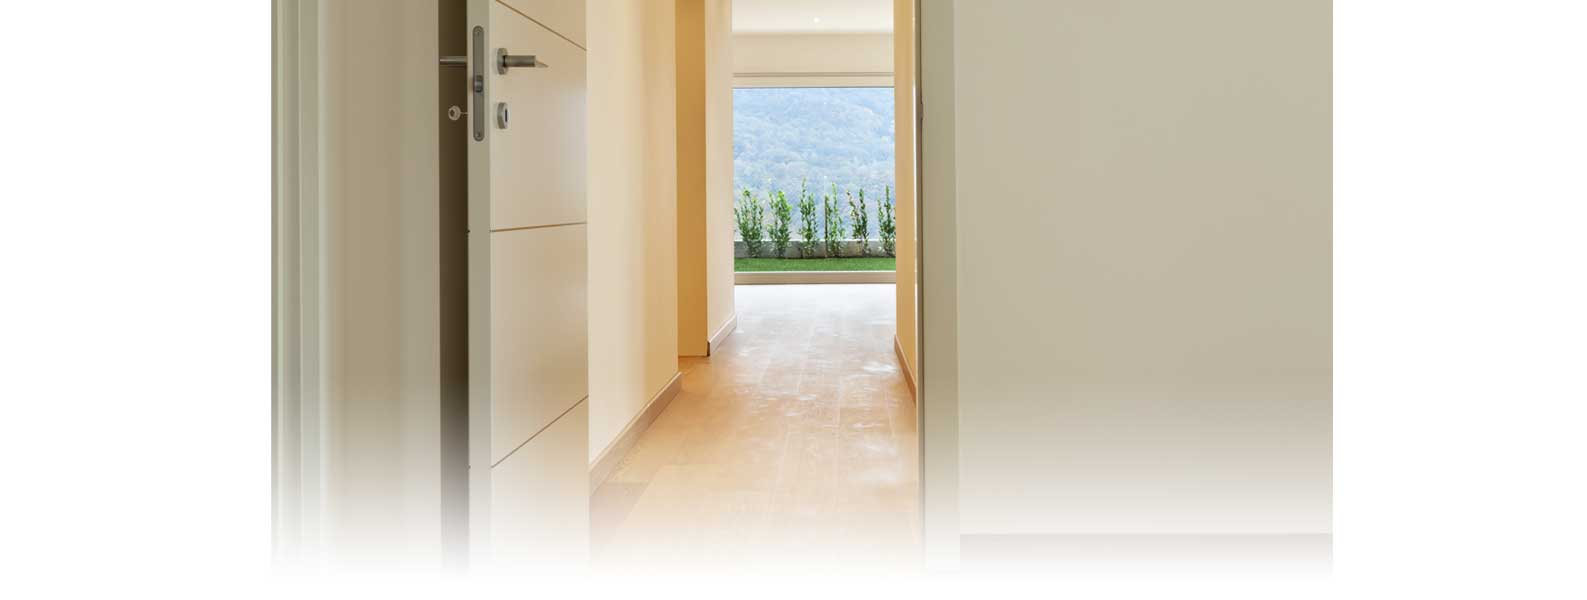 collection doors marina product and with panel door prev inline degree return frameless swing